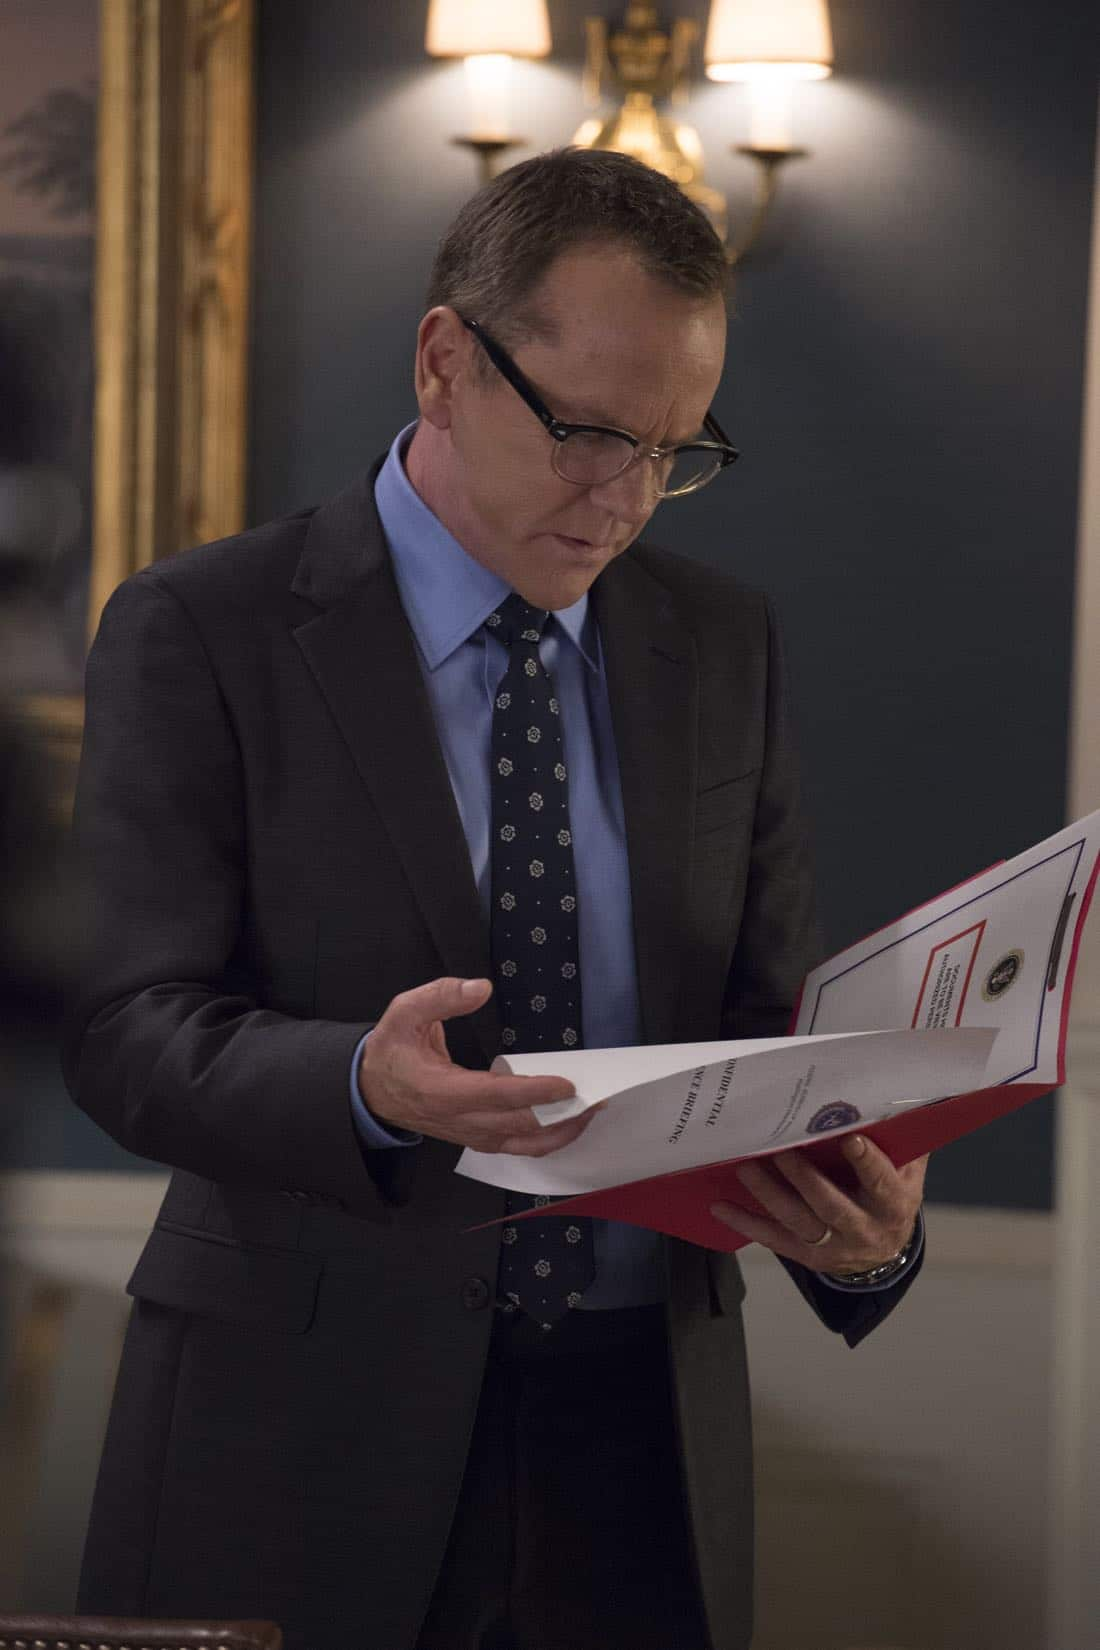 "DESIGNATED SURVIVOR - ""One Year In"" - In the season two premiere episode of ABC's hit drama ""Designated Survivor,"" Kiefer Sutherland returns as President Tom Kirkman. Now, one year into office, Kirkman is a Commander-in-Chief determined to rebuild the Capitol and capture the terrorists behind the catastrophic attack on the United States. When Ukrainian nationalists hijack a Russian Air flight, the president is faced with a hostage situation in which his diplomatic skills are put to the test, on ""Designated Survivor,"" airing WEDNESDAY, SEPTEMBER 27 (10:00-11:00 p.m. EDT). (ABC/Ben Mark Holzberg)"